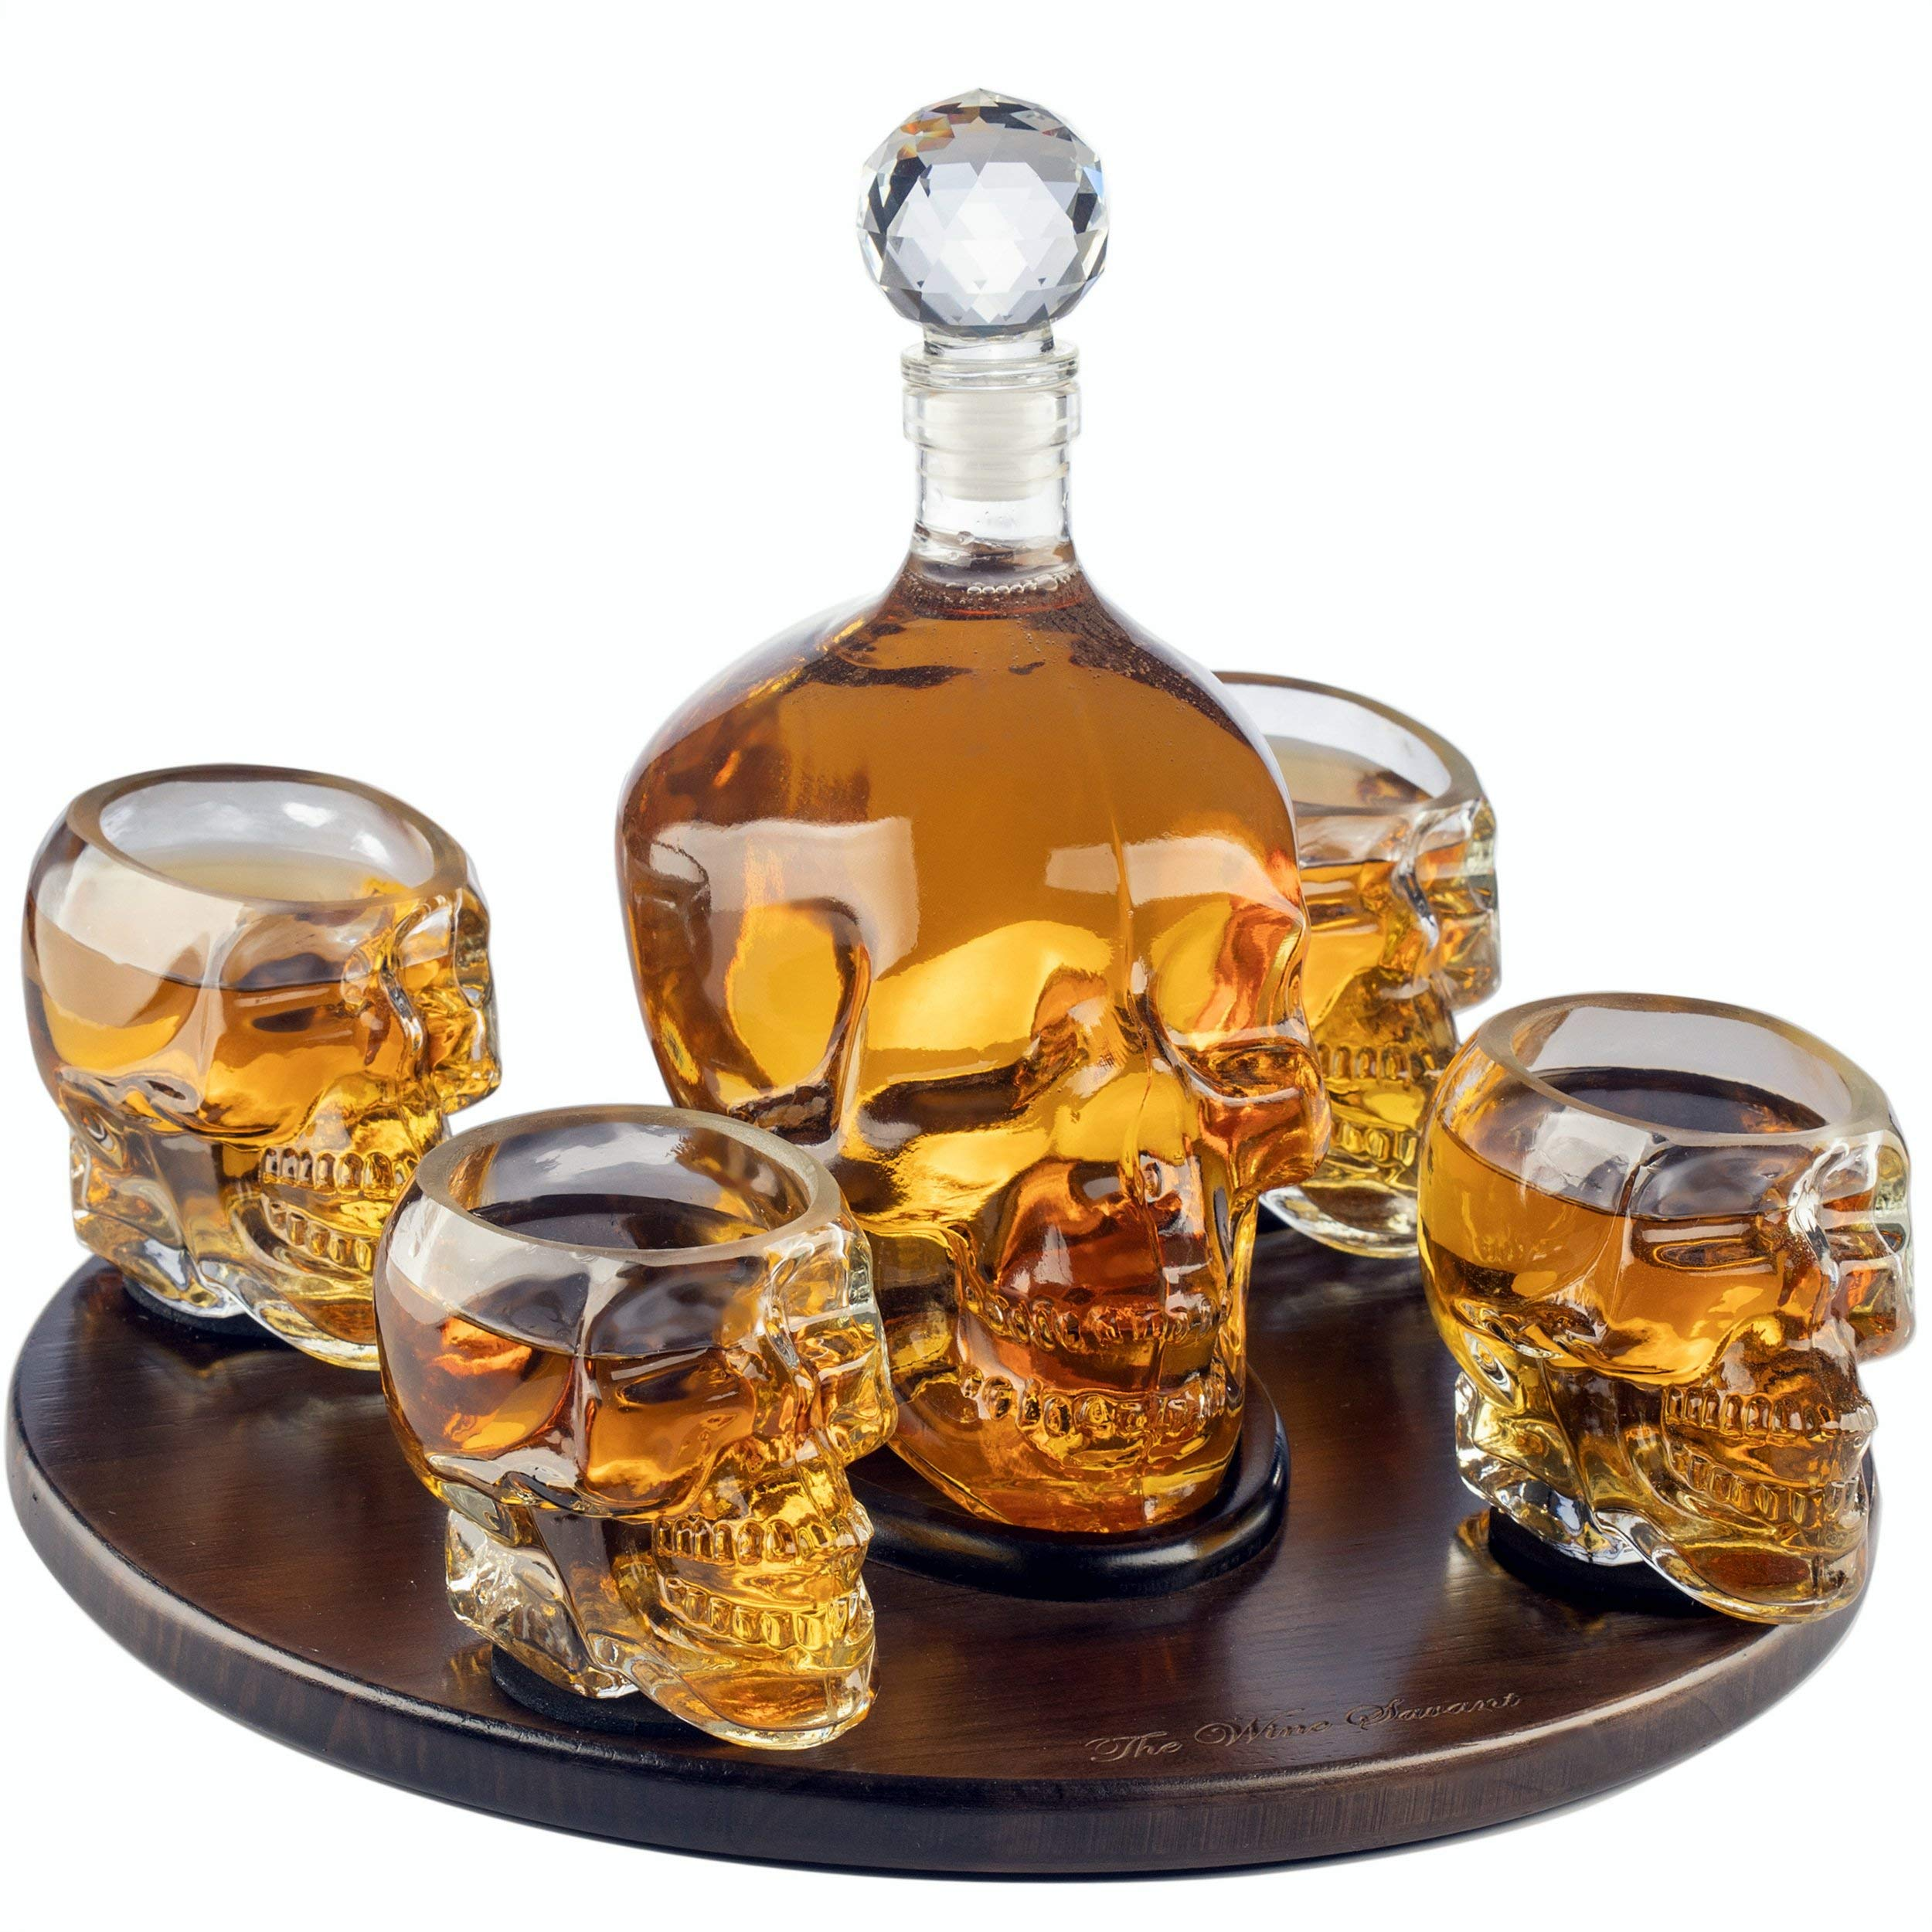 The Wine Savant Large Skull Face Decanter with 4 Skull Shot Glasses and Beautiful Wooden Base - By Use Skull Head Cup For A Whiskey, Scotch and Vodka Shot Glass, 25 Ounce Decanter 3 Ounces Shot Glass by The Wine Savant